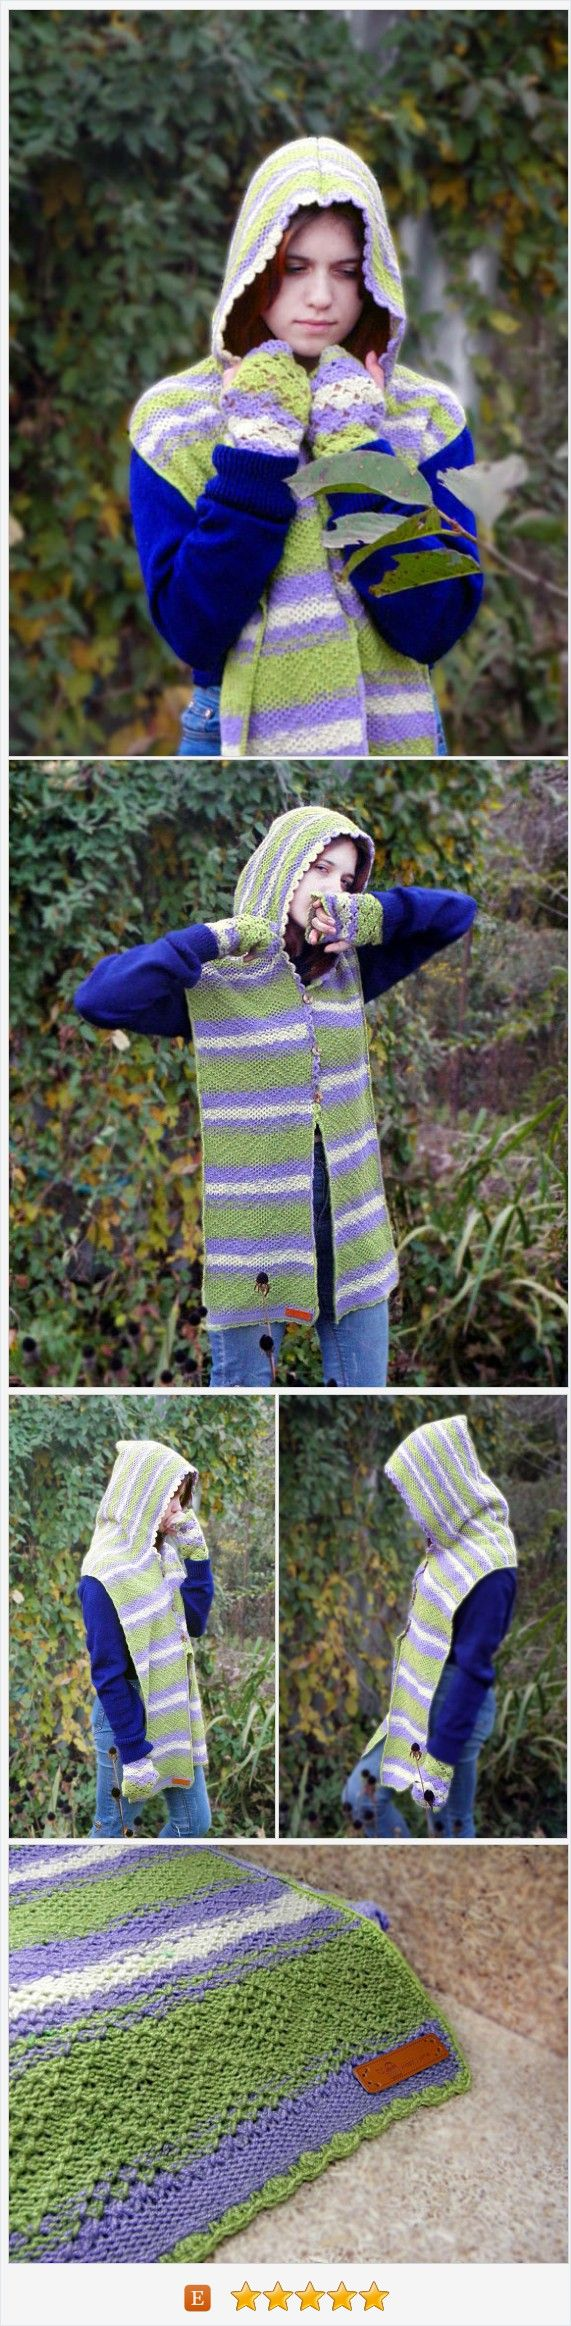 Wearing this set (hooded scarf and mittens) you can feel as a magic elf in lavender fields.  The striped scarf can fasten on the front with wood buttons like cardigan. Lavender is also shown on the buttons. It's fine gift idea for her, if she is young woman or teen, if she is nice and romantic.  #scoodie  #Lavender #Gift_ideas_for_her #Romantic #FairyKnitRU https://www.etsy.com/FairyKnitRU/listing/551289758/hooded-scarf-set-mittens-scoodie-warm?ref=shop_home_active_18